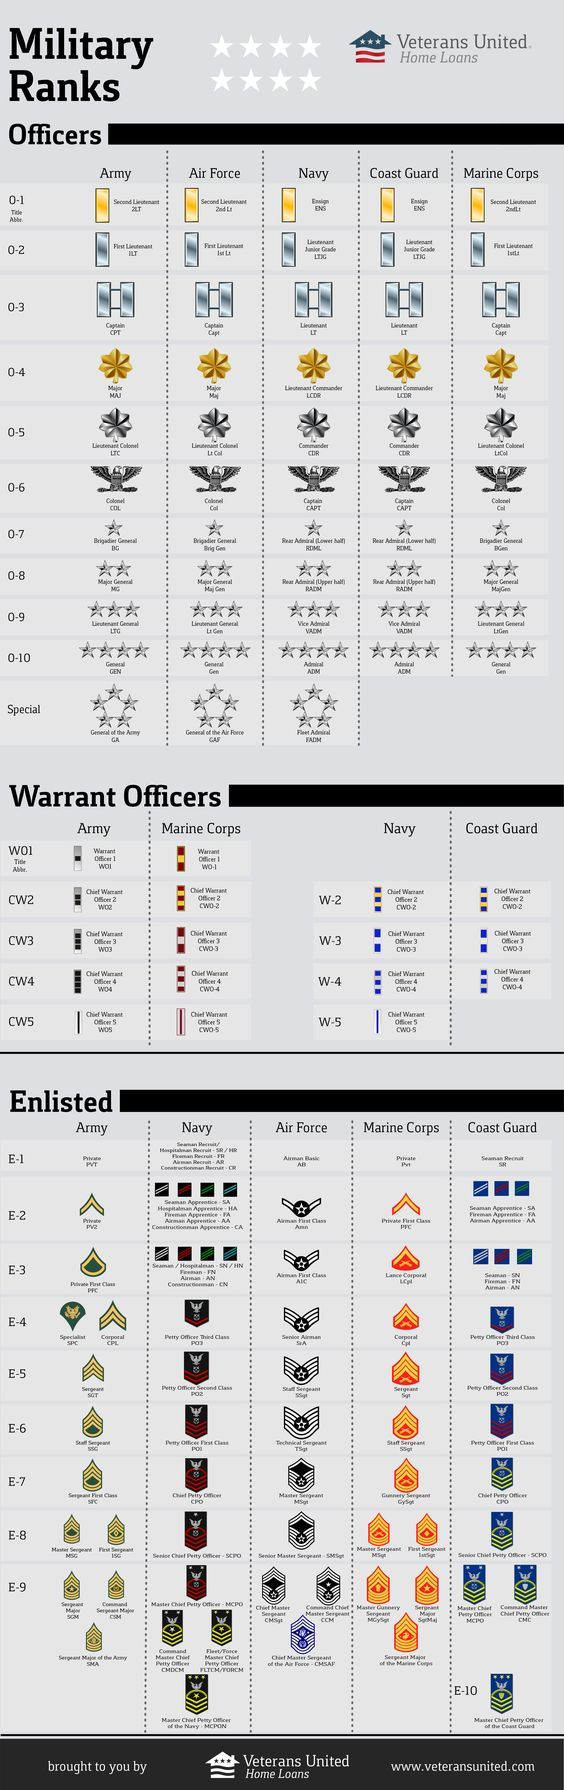 See this infographic from Veterans United Home Loans on military rankings for the Army, Navy, Air Force, Coast Guard, and Marines.